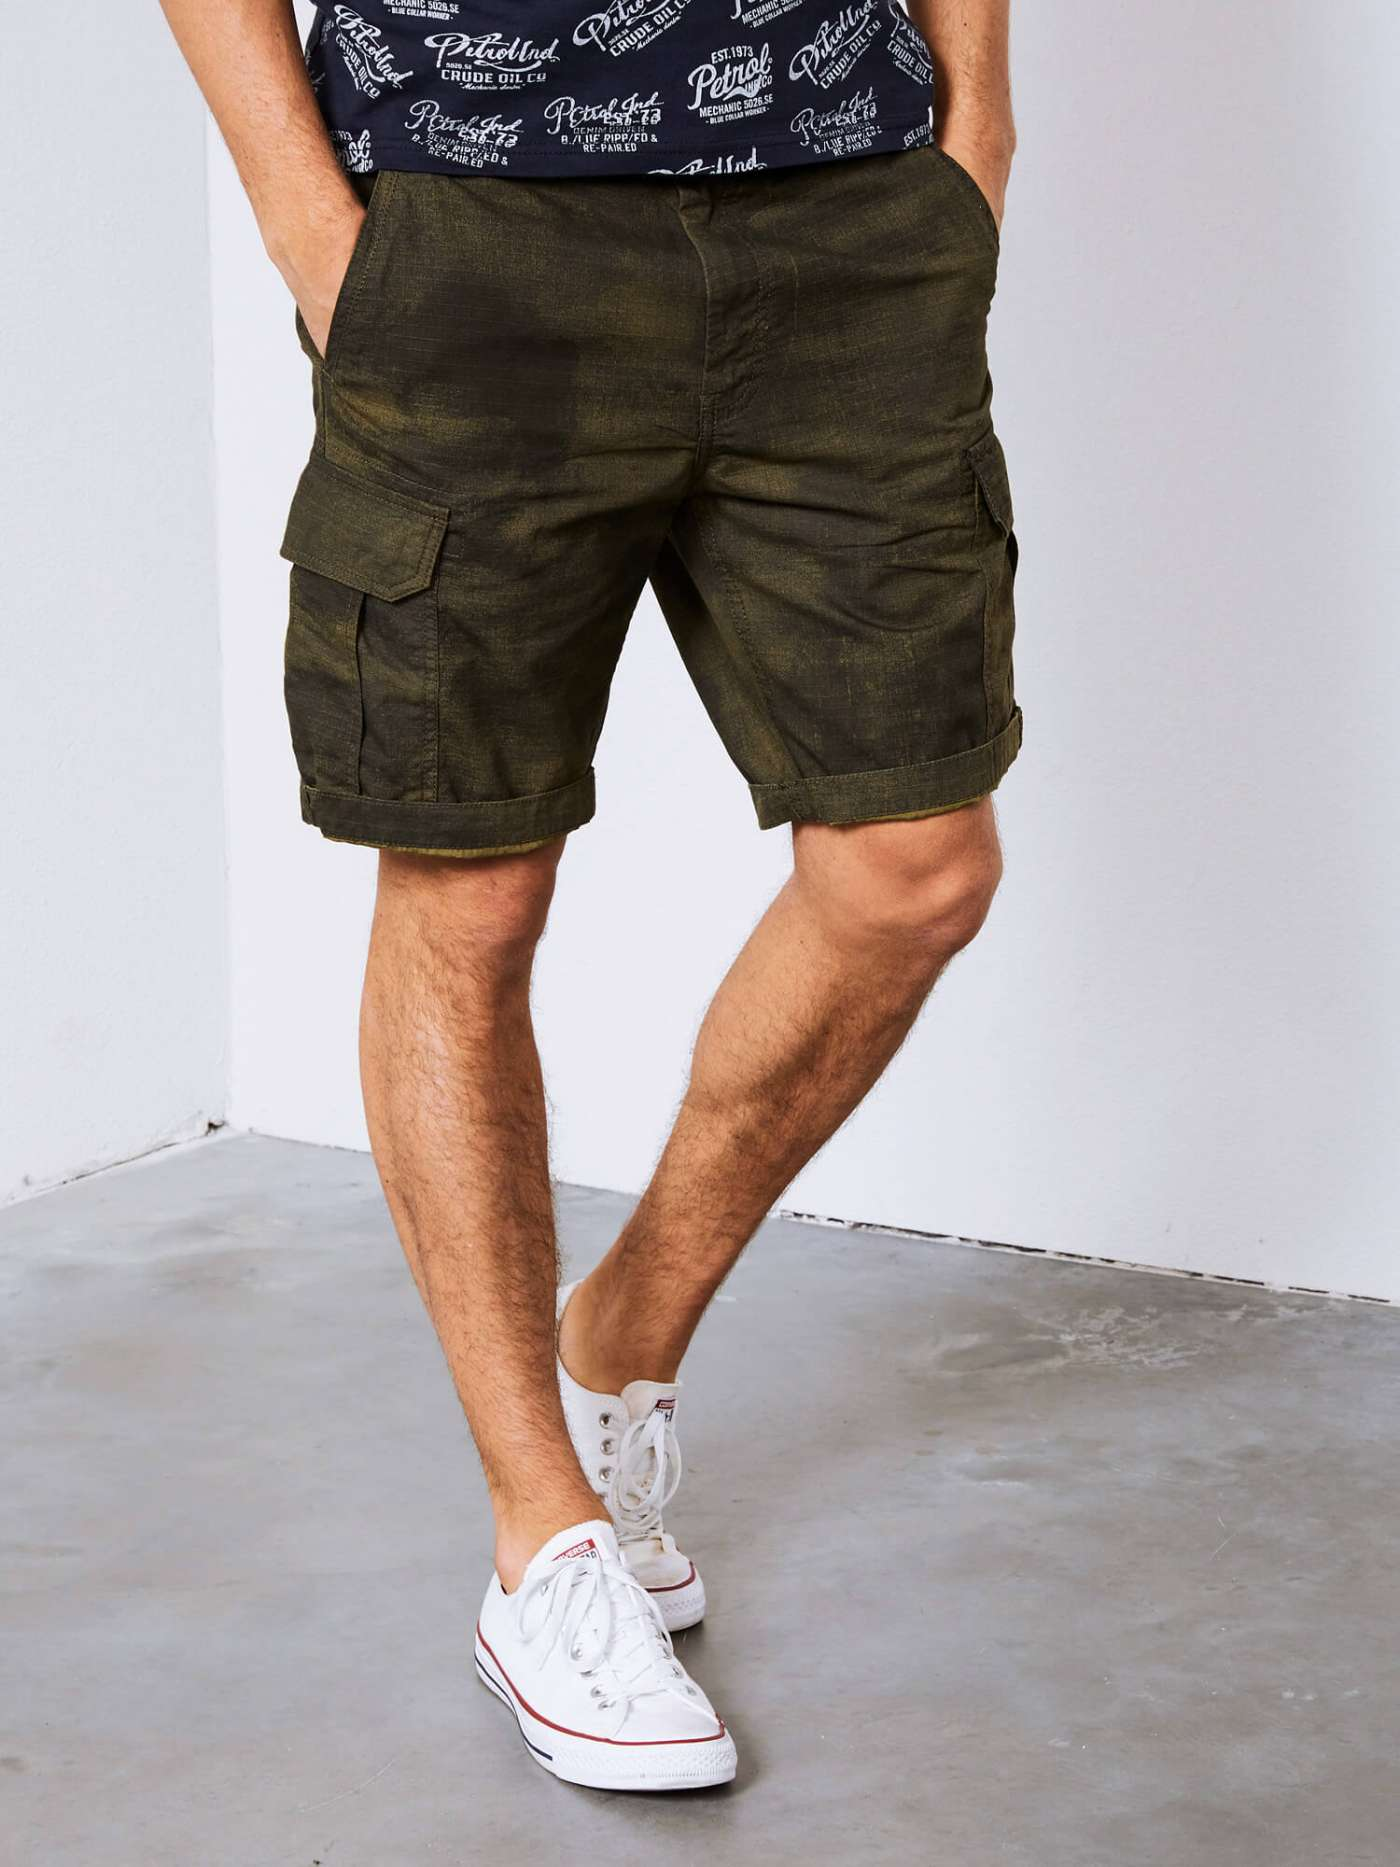 Shorts with blotches